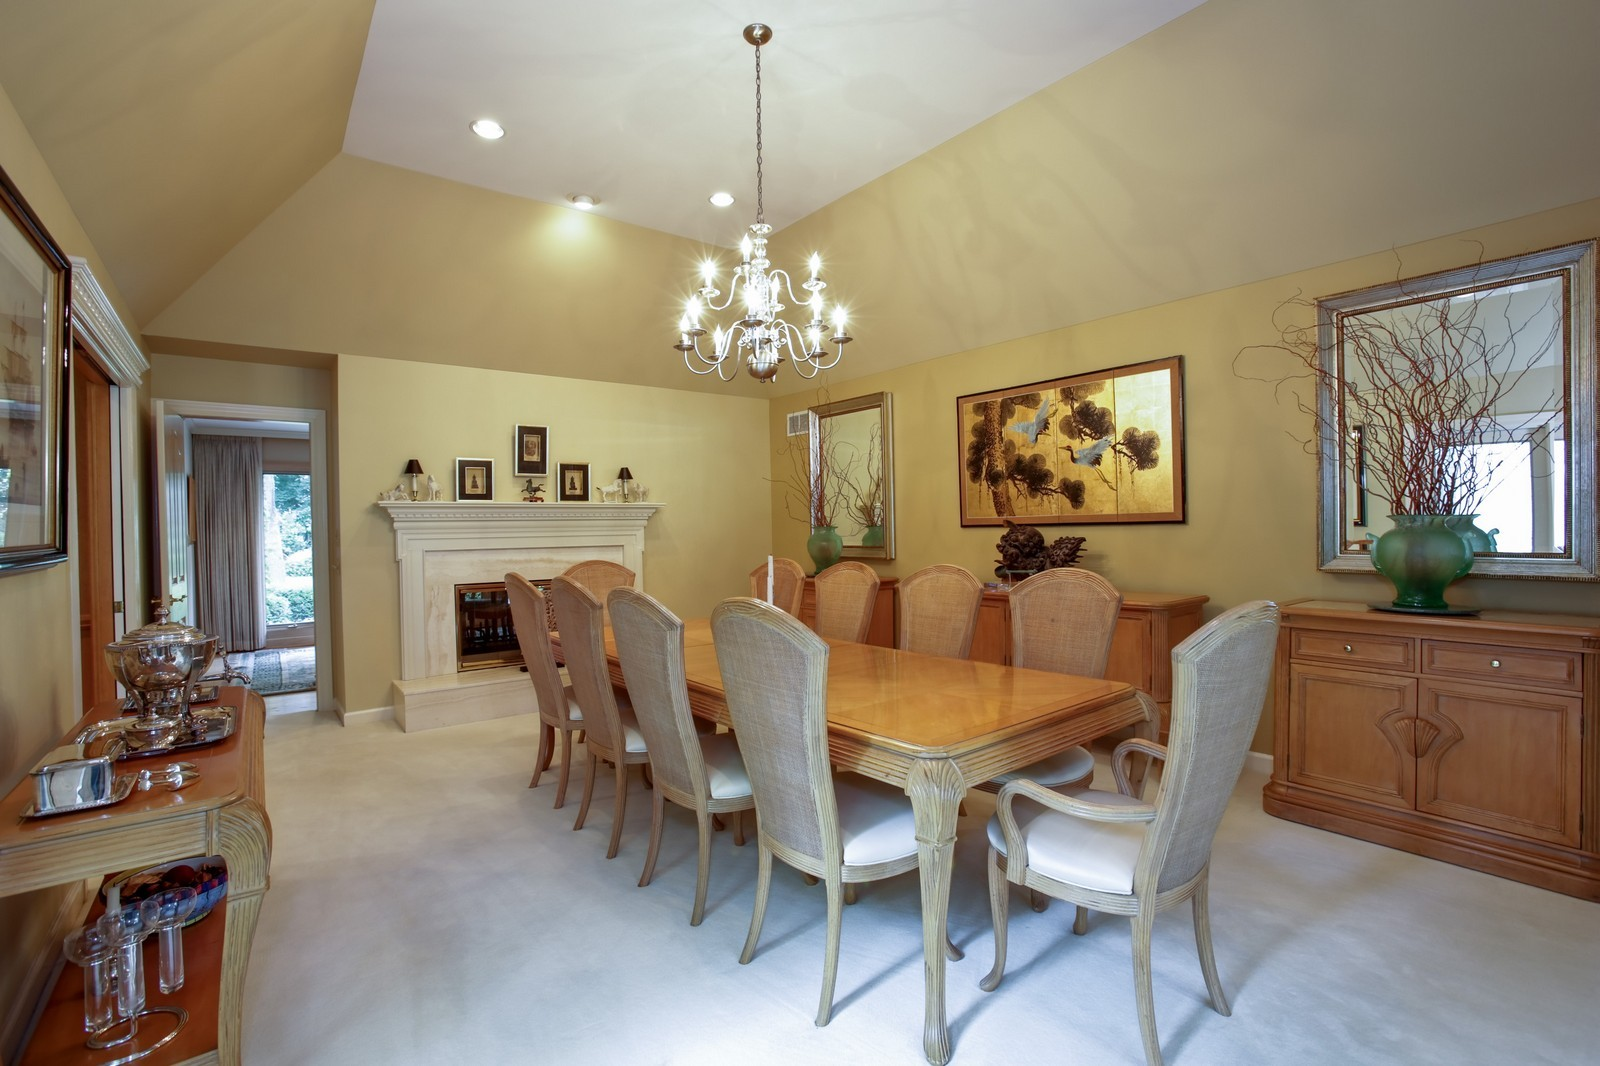 Real Estate Photography - 25W445 Plamondon Rd, Wheaton, IL, 60189 - Dining Room